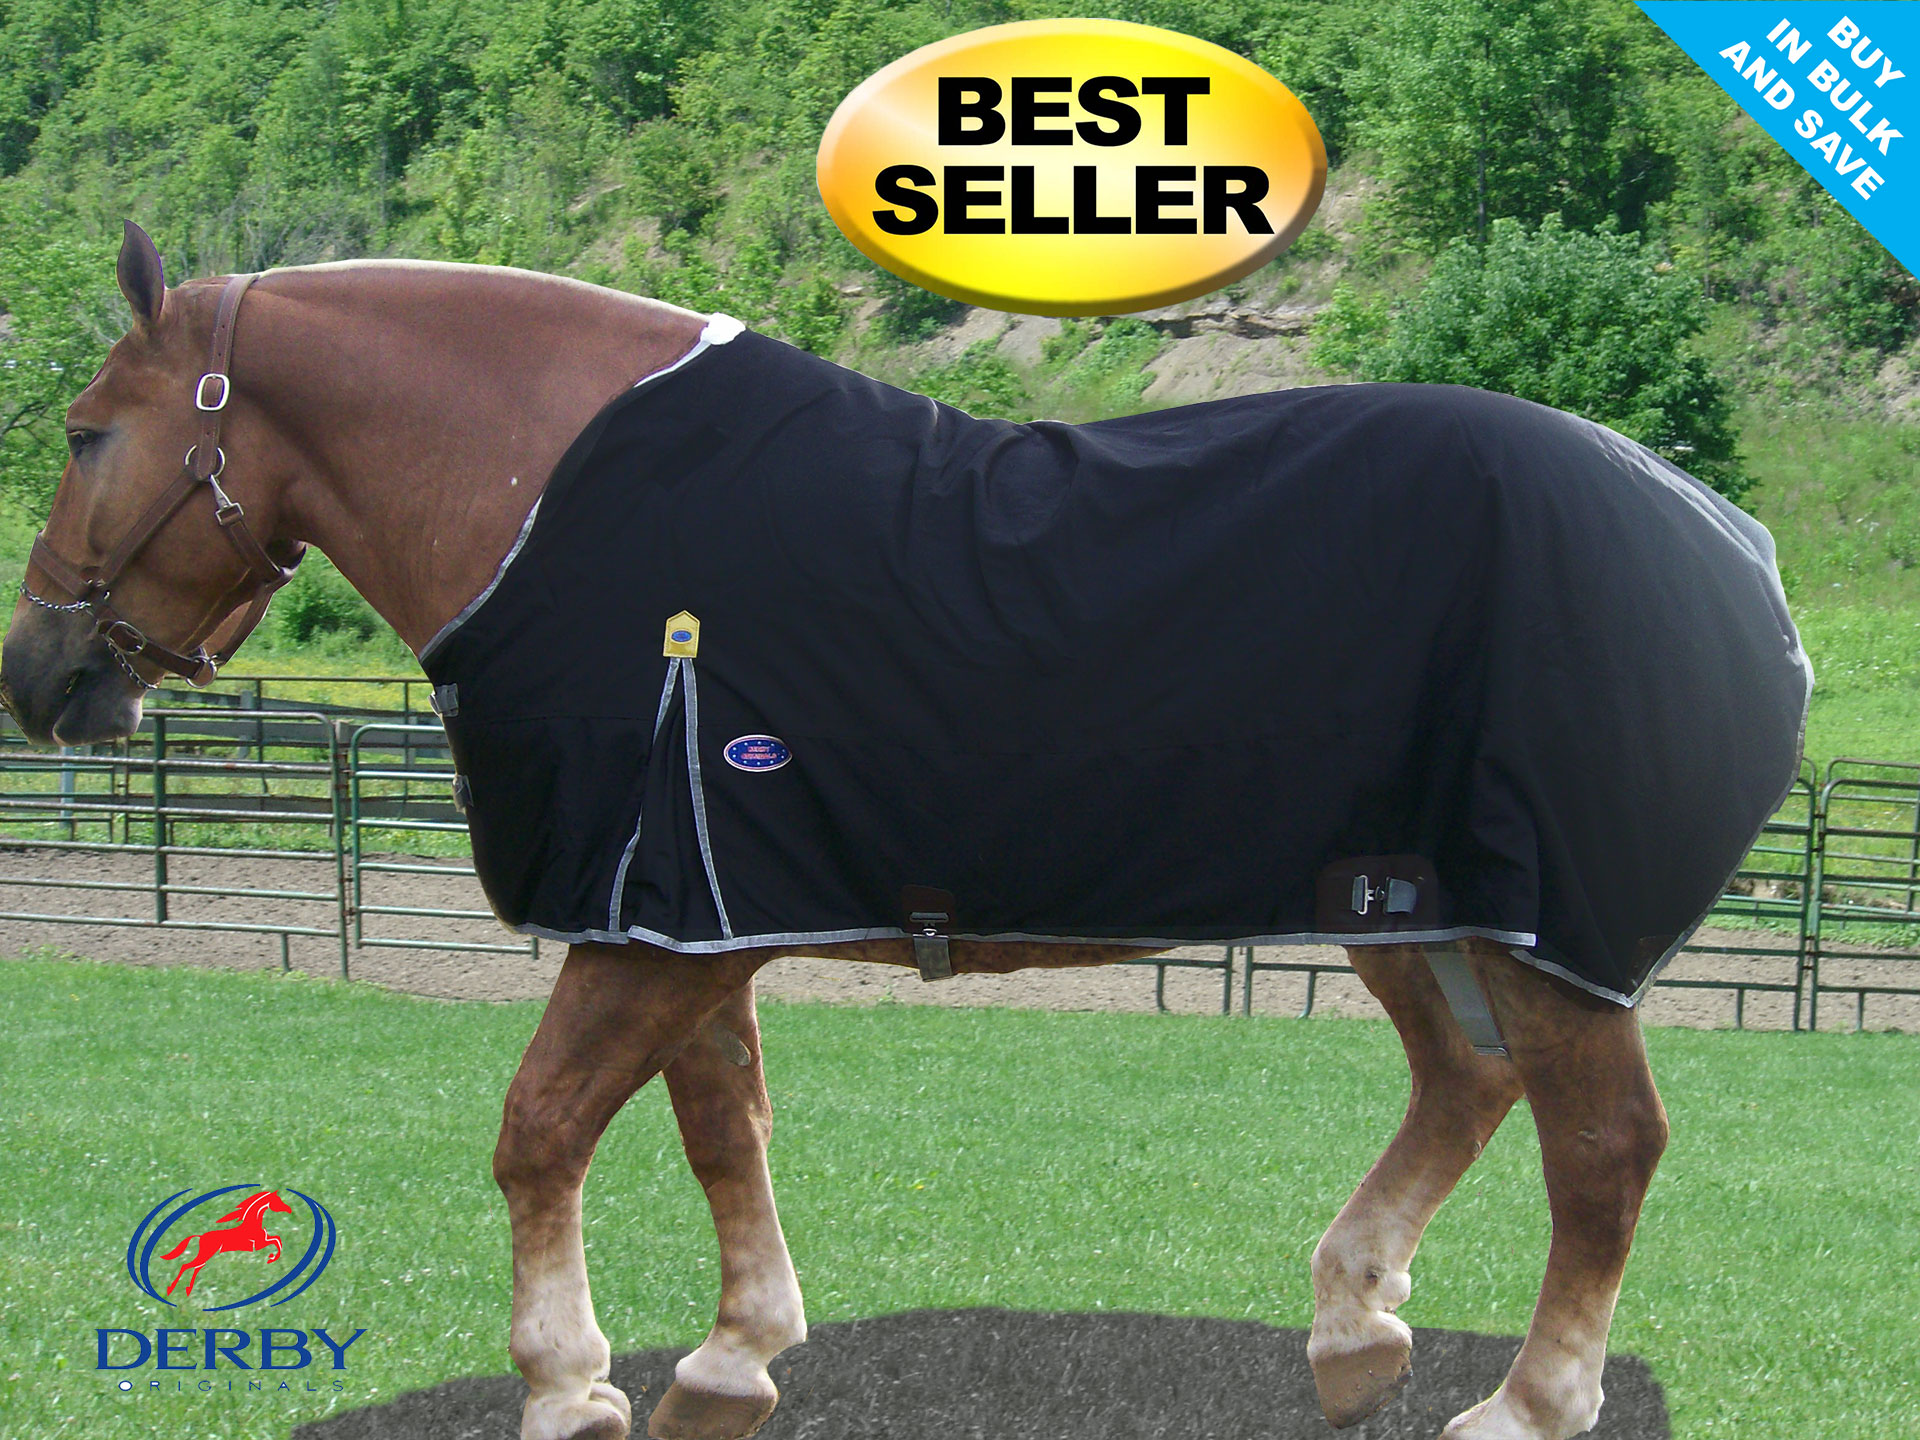 Winter Horse Blankets >> Nylon Winter Turnout Draft Horse Blankets 600d By Derby